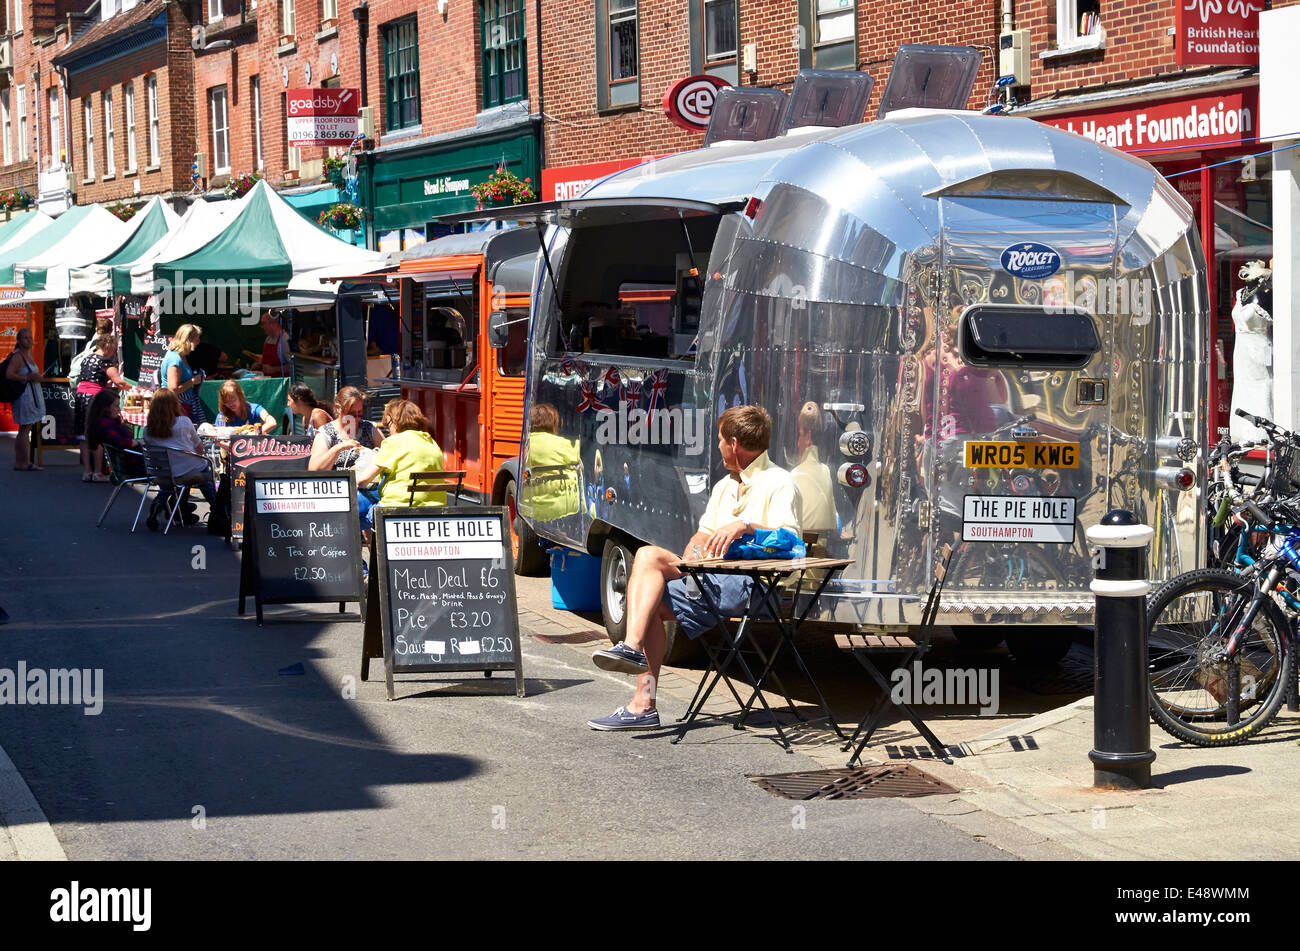 Fast Food Caravan Stock Photos Images Alamy Traditional Electrical Installation Guide Caravans Plus Mobile Outlets One In The Style Of An Airstream Market Stalls During